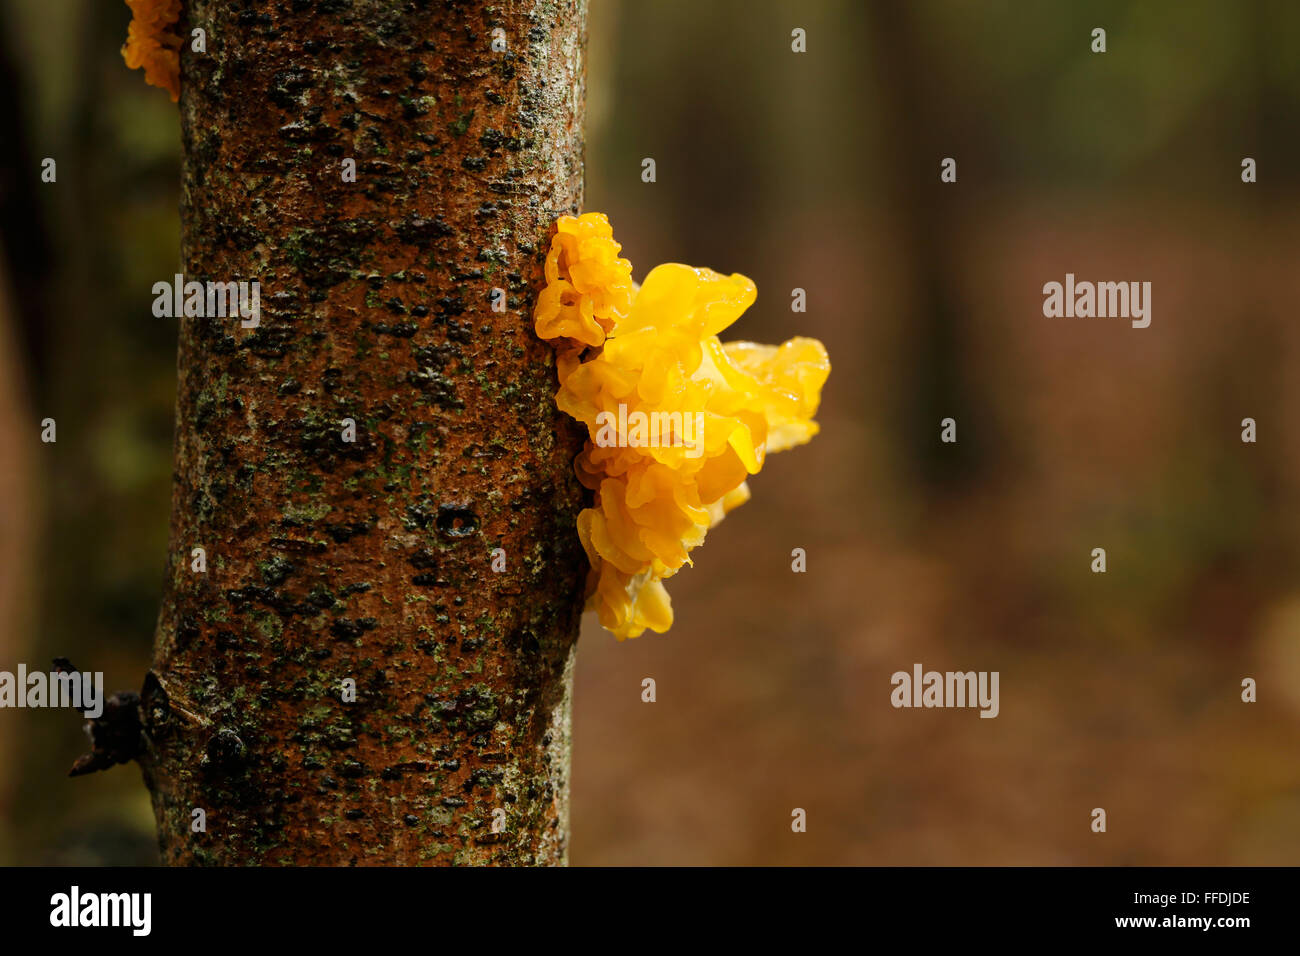 Swollen Yellow Brain fungi growing on a tree in woodland. - Stock Image